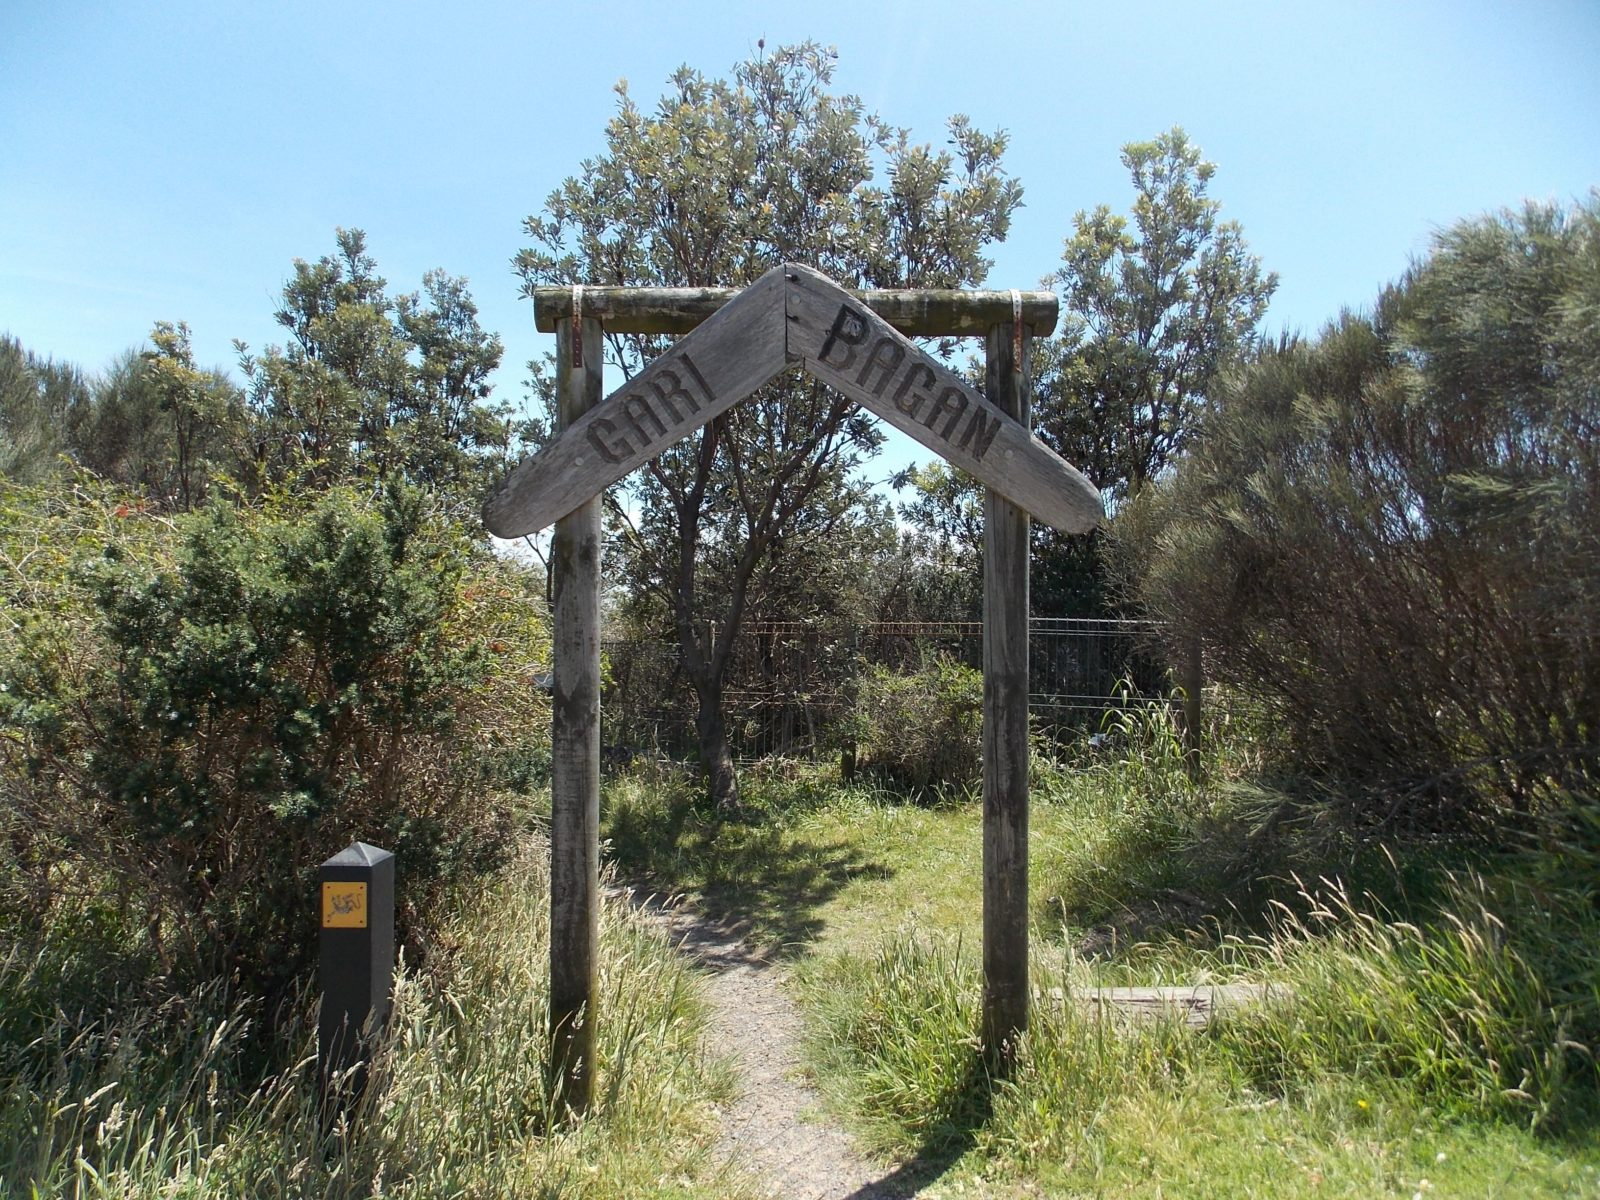 Coomee Nulunga Cultural Trail